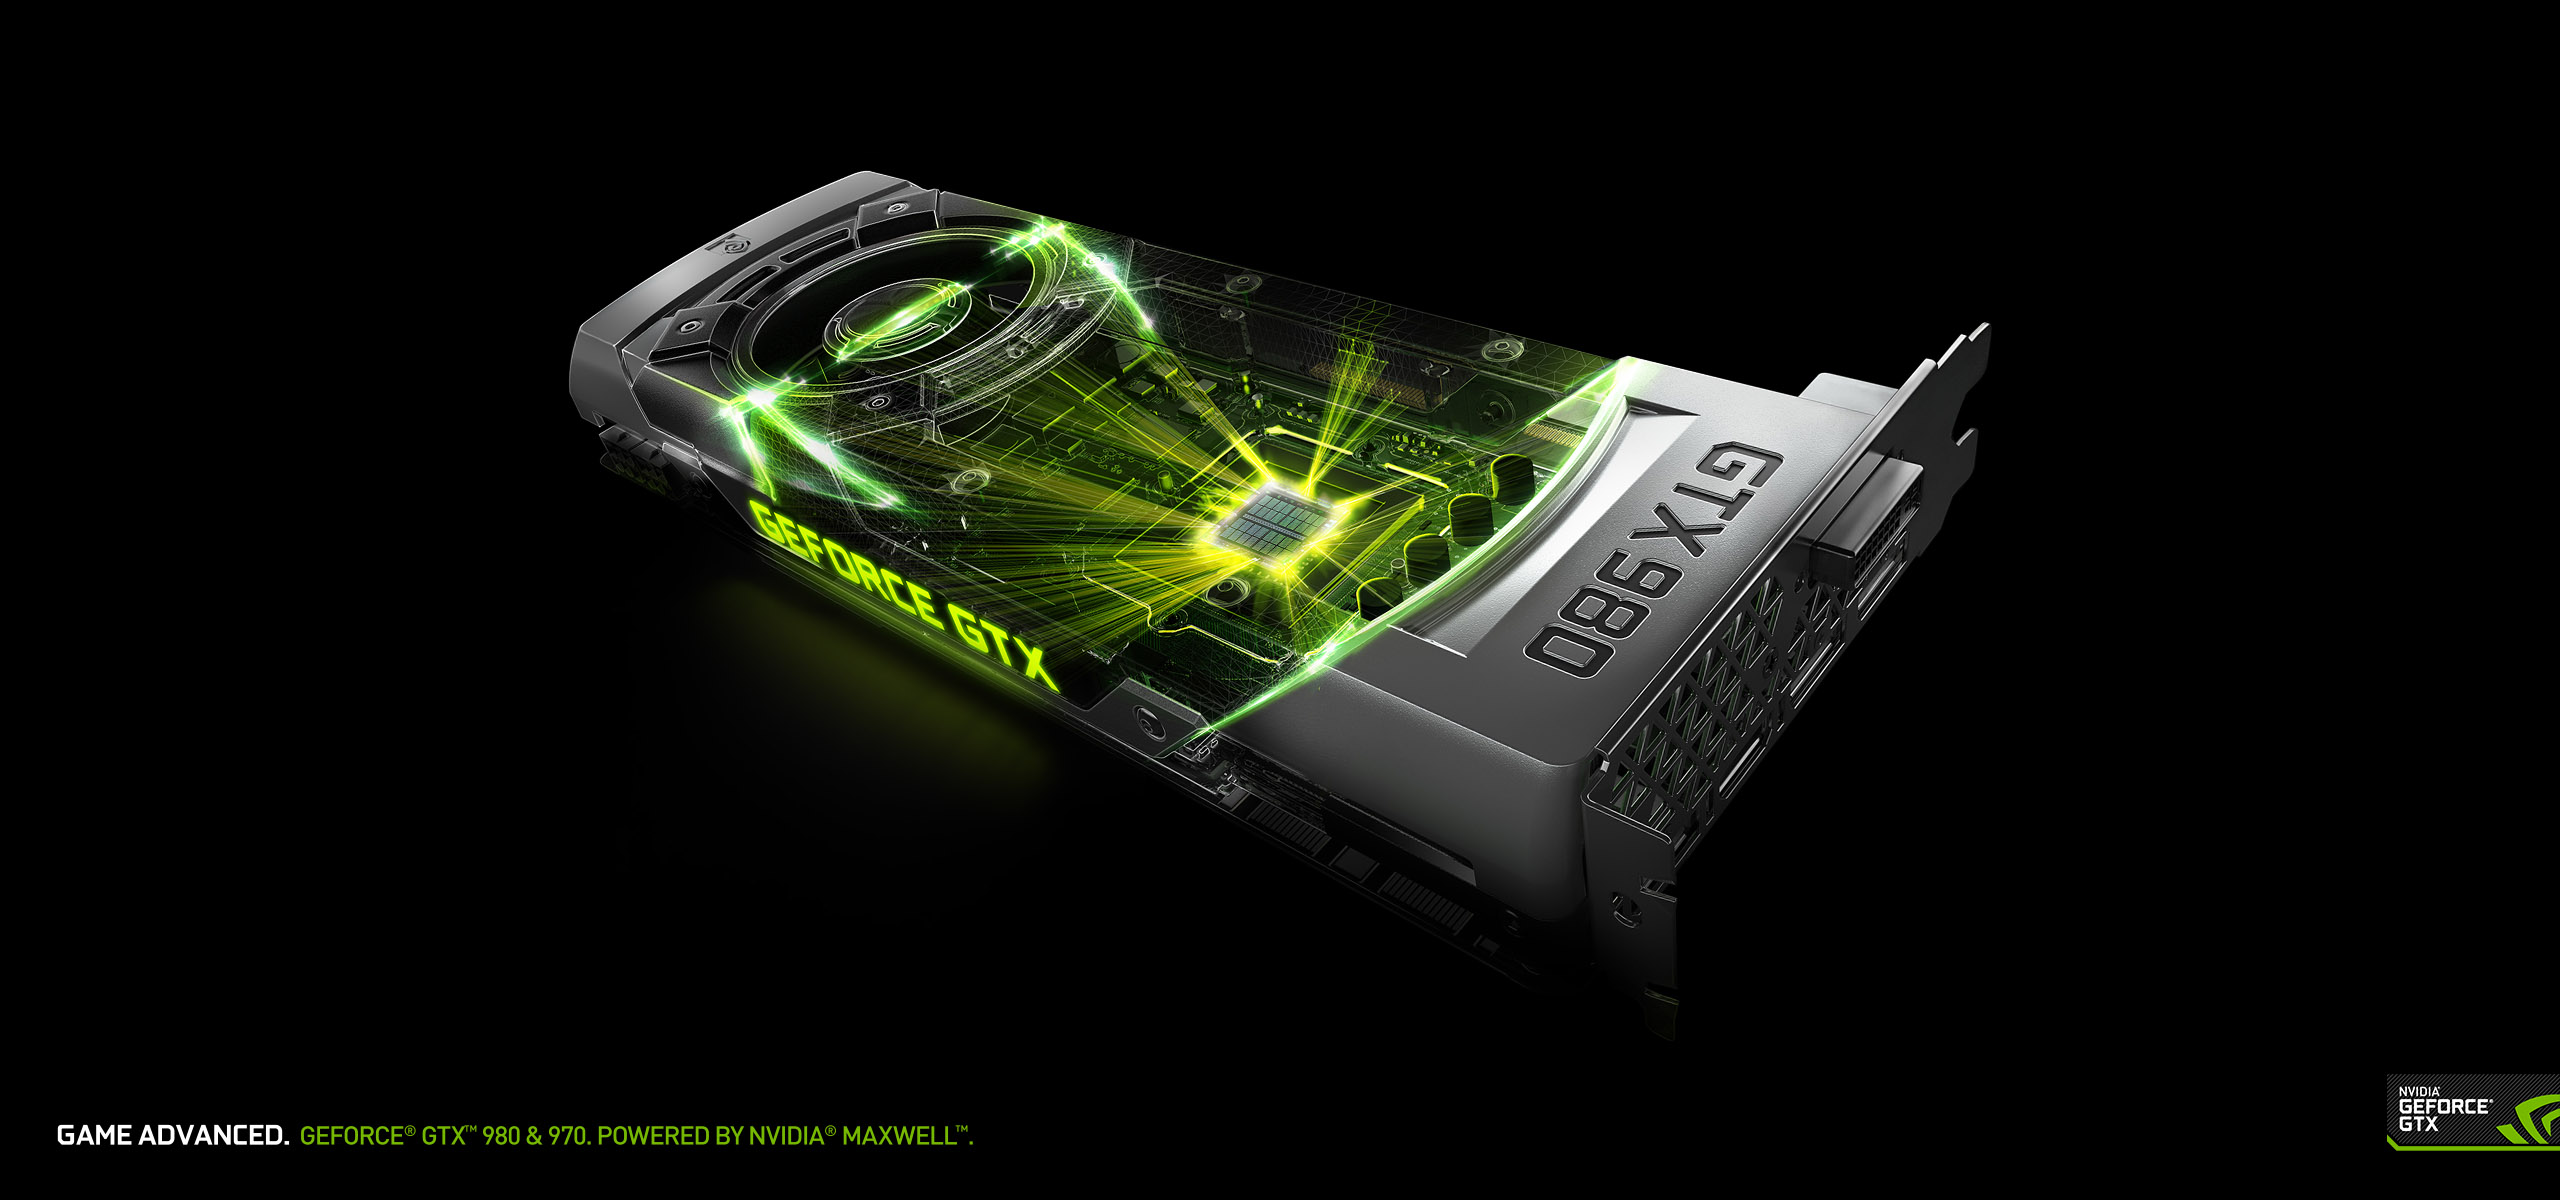 game advanced download the amazing new geforce gtx 980